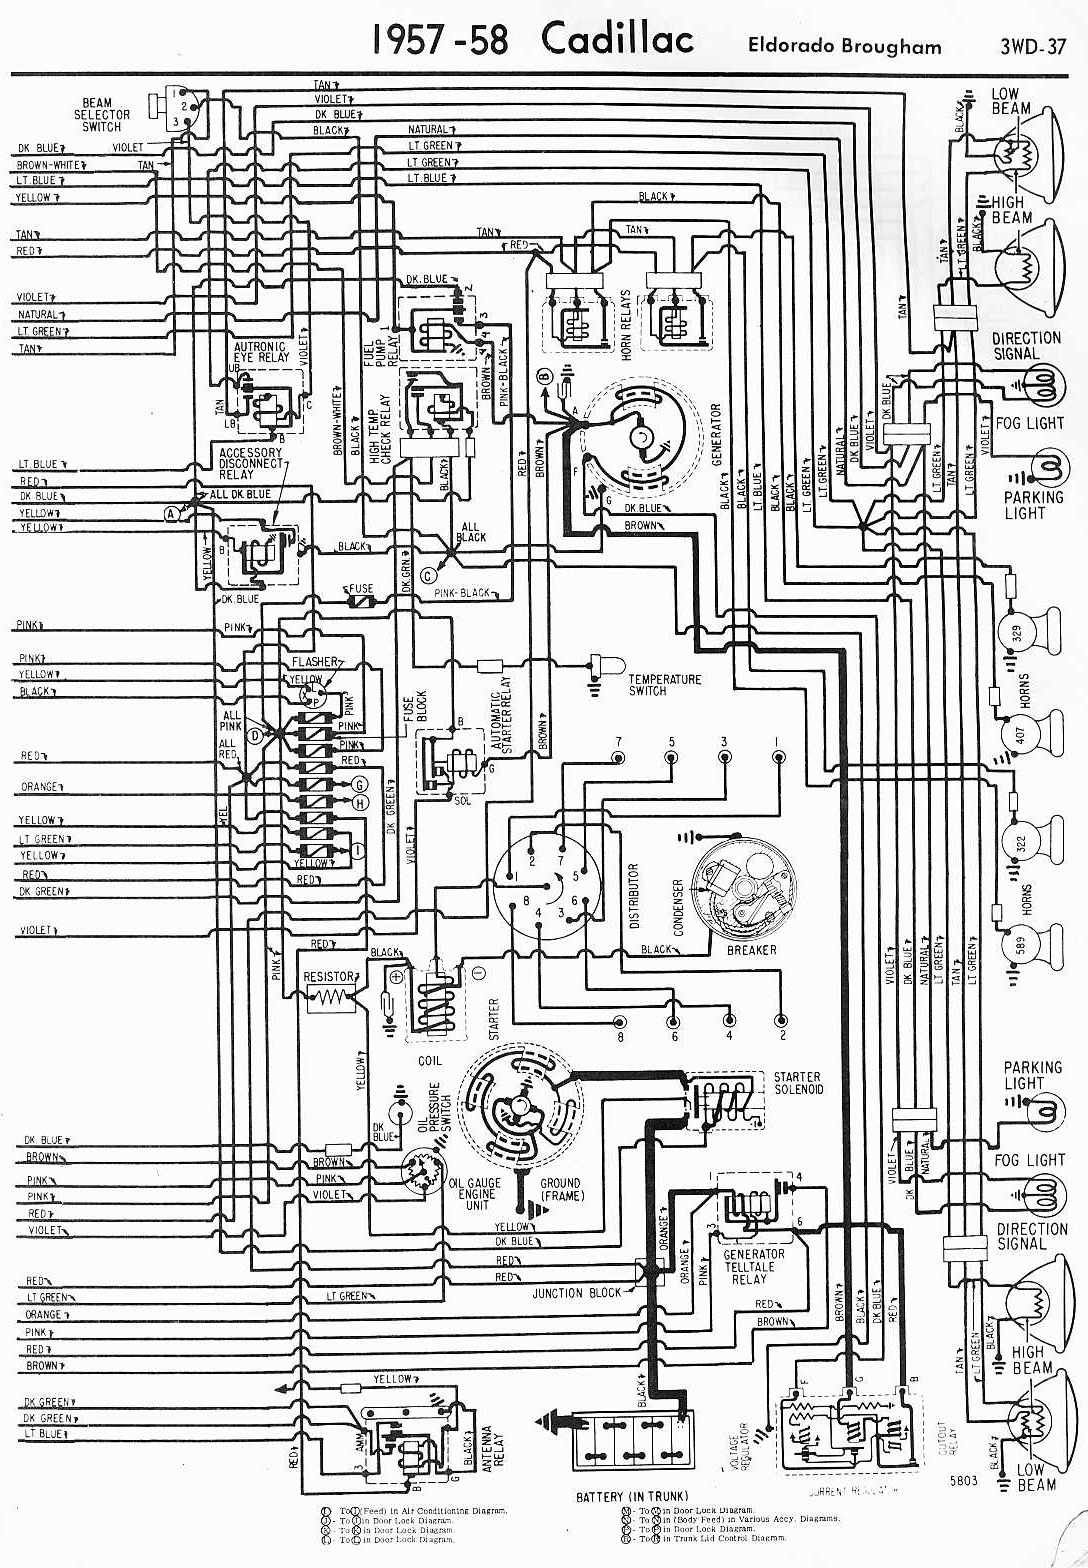 cadillac car manuals wiring diagrams pdf fault codes rh automotive manuals net